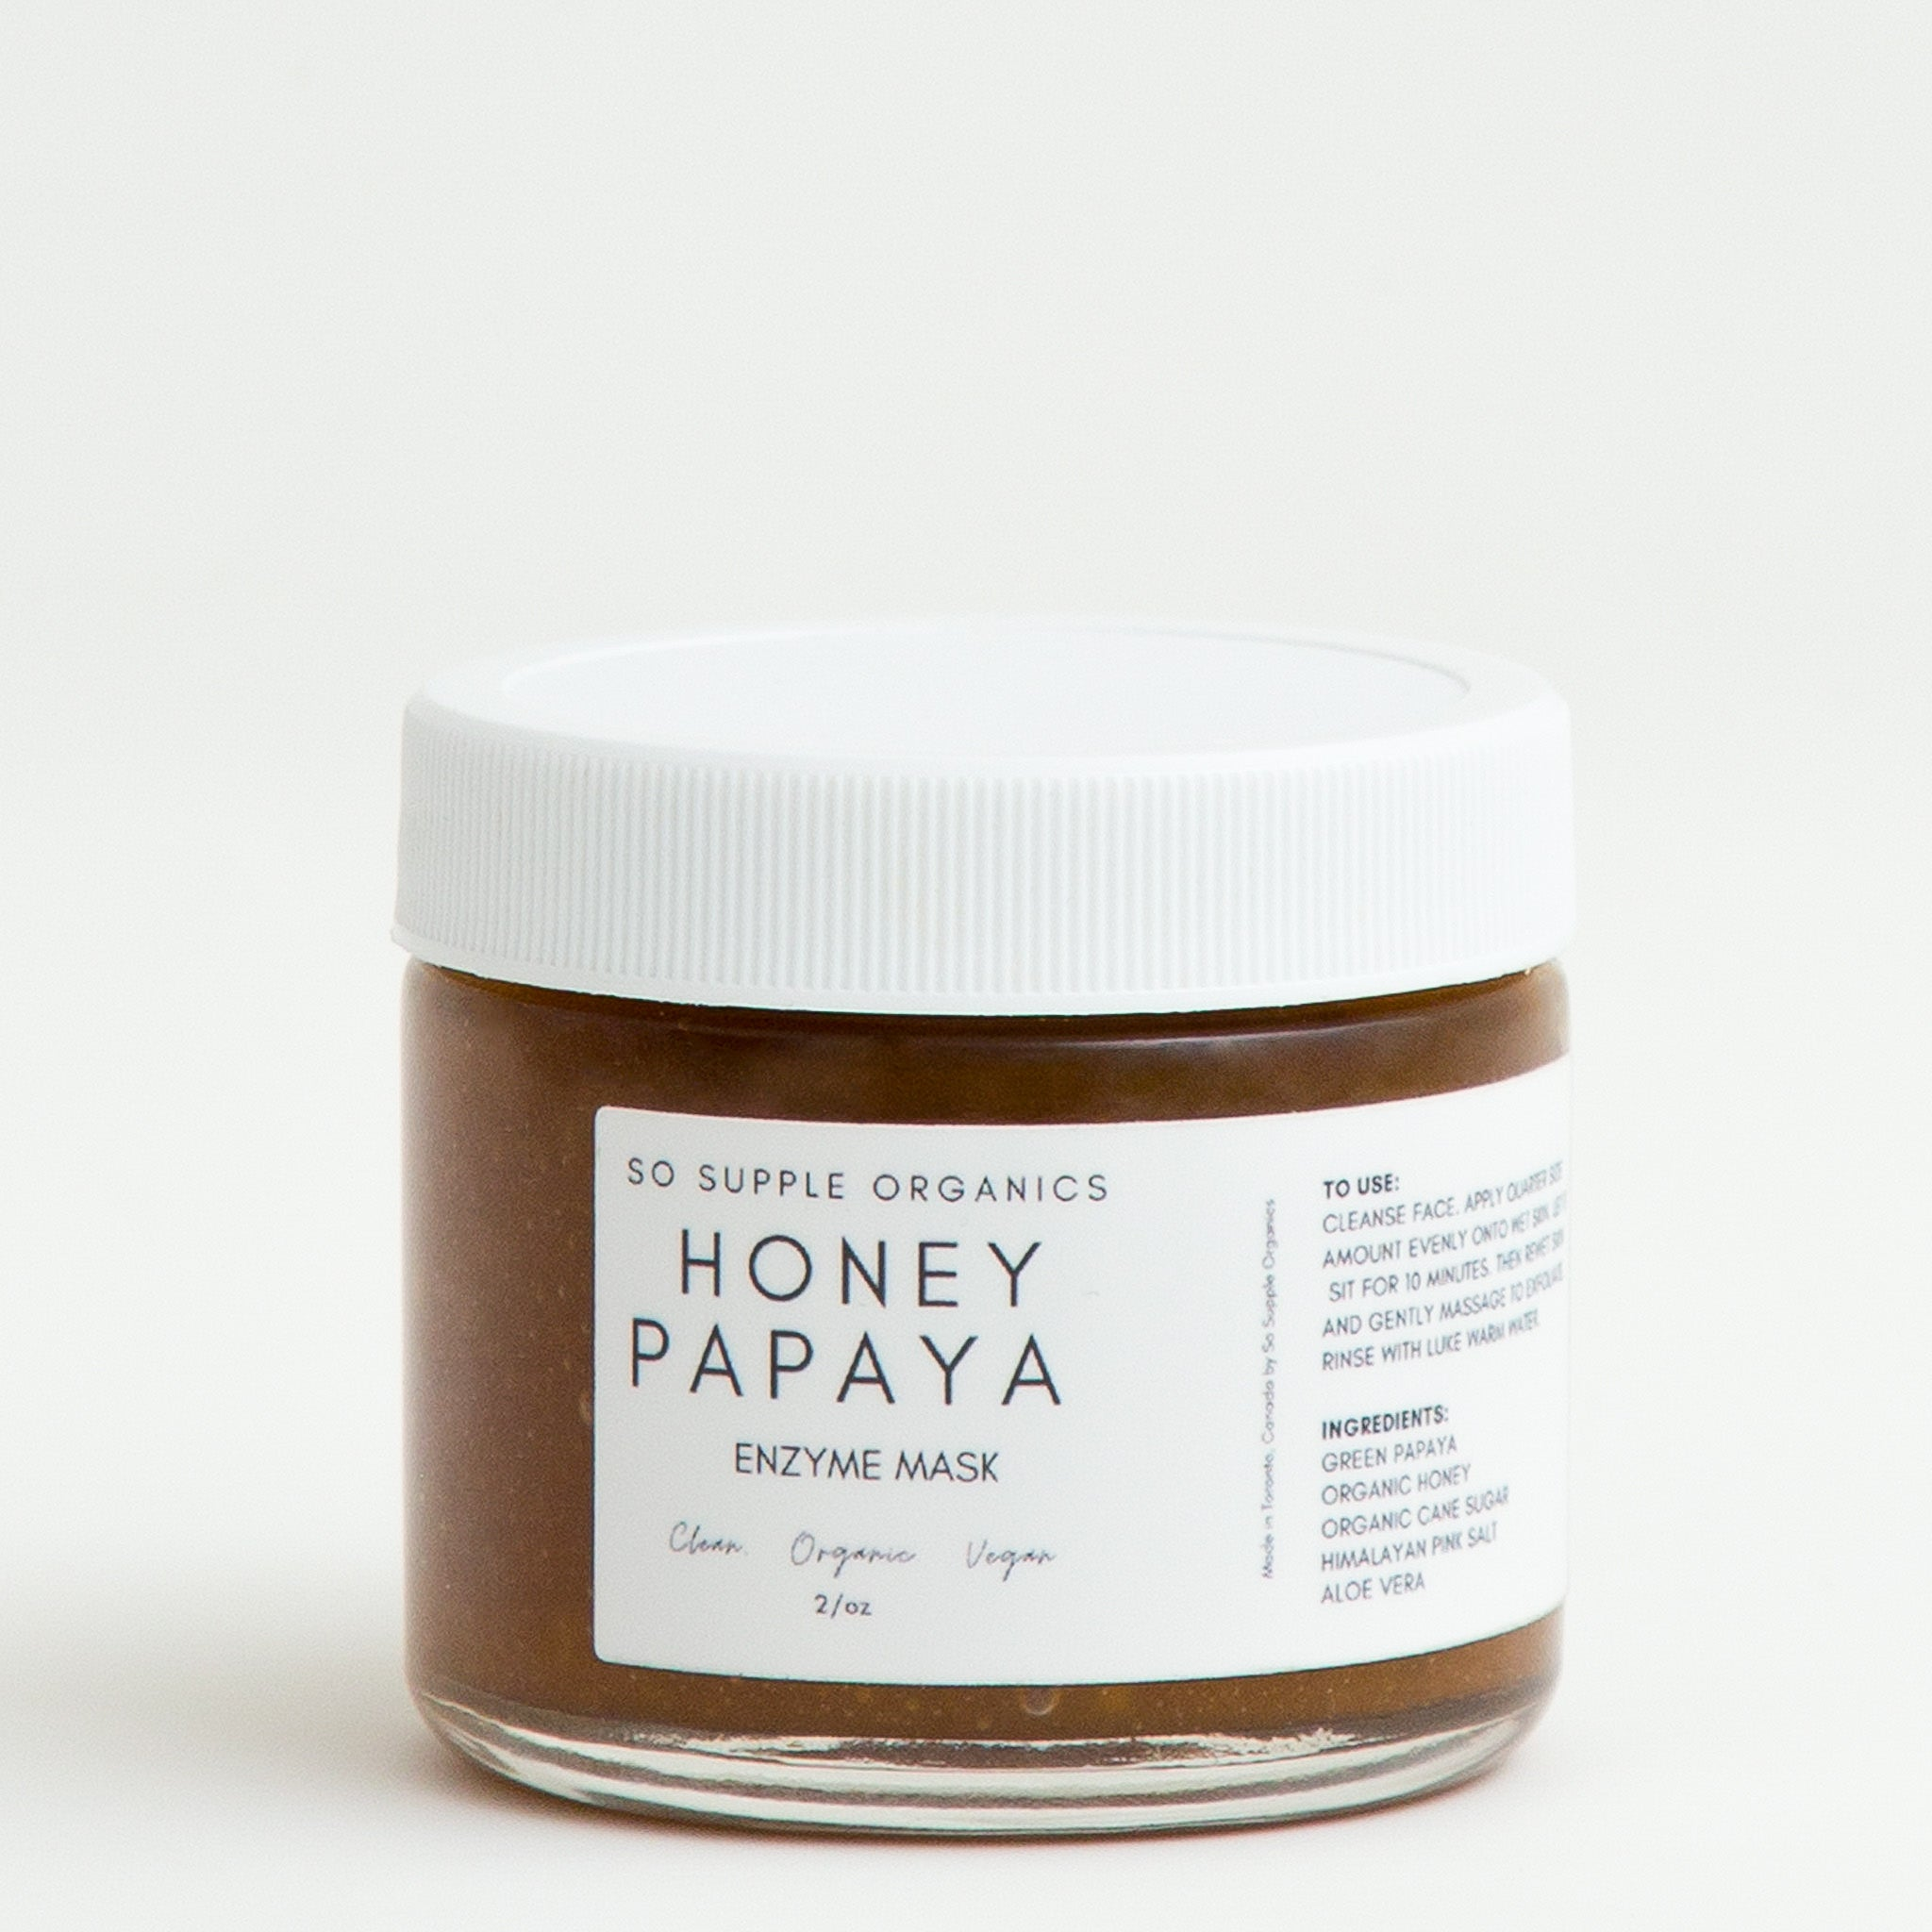 HONEY PAPAYA Enzyme Mask